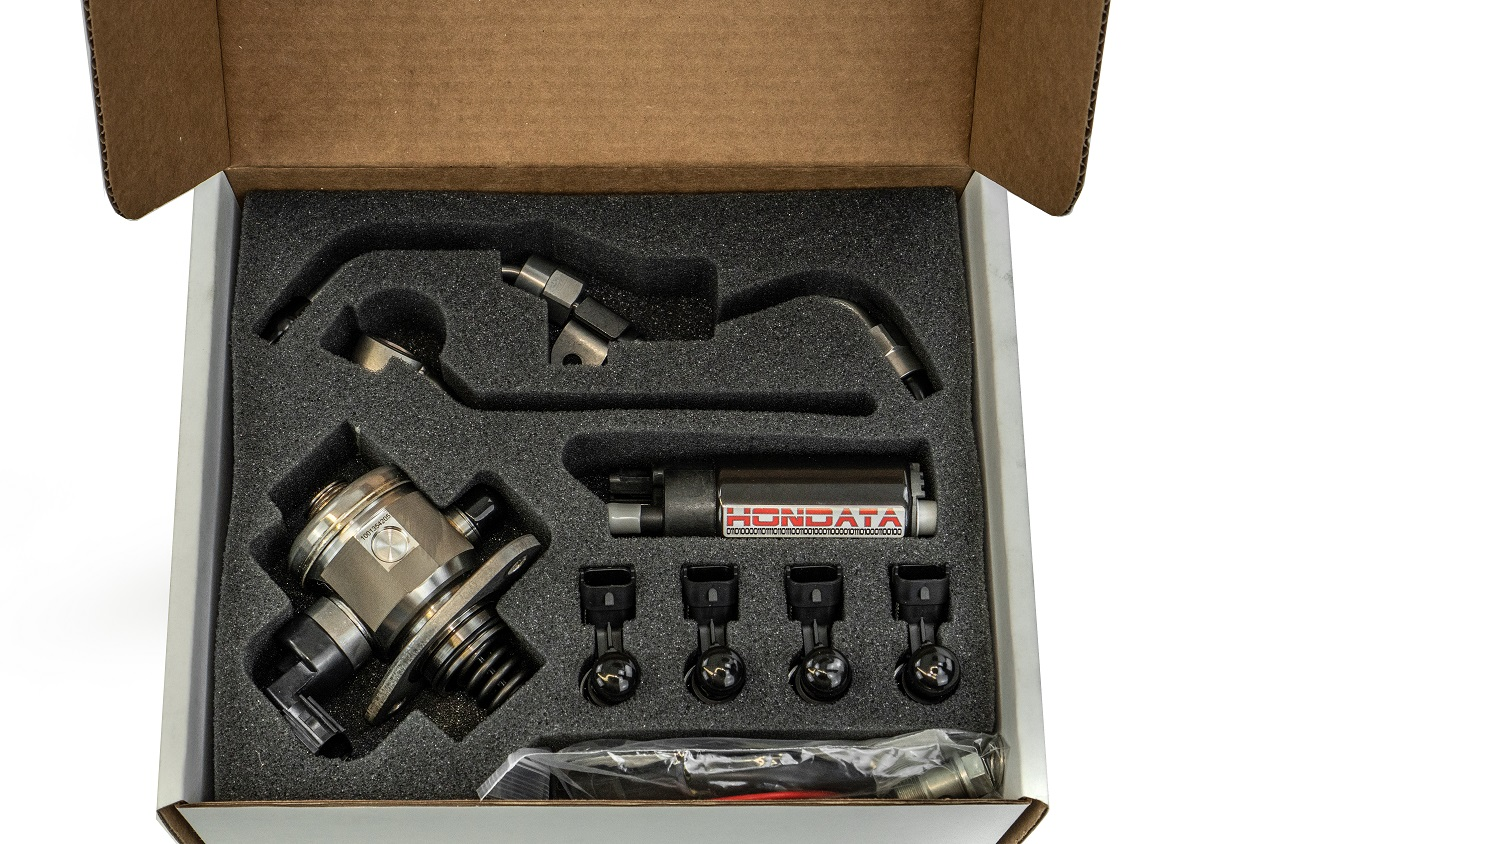 The kit comes with the all pumps, injectors, lines, and fittings needed to bump up power figures on your CTR